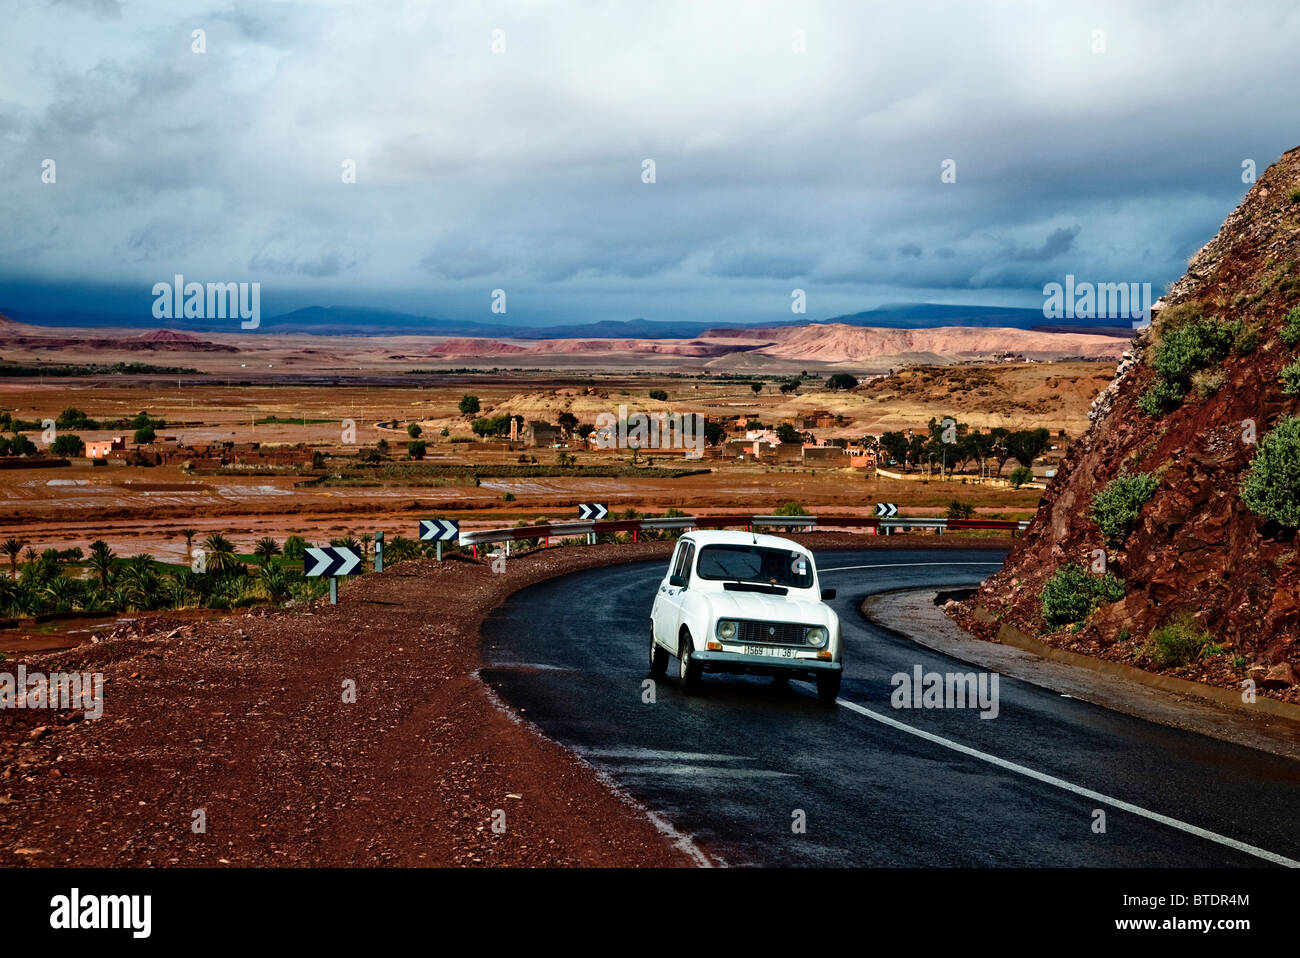 Old car on a narrow winding tar road with storm clouds over a plain - Stock Image